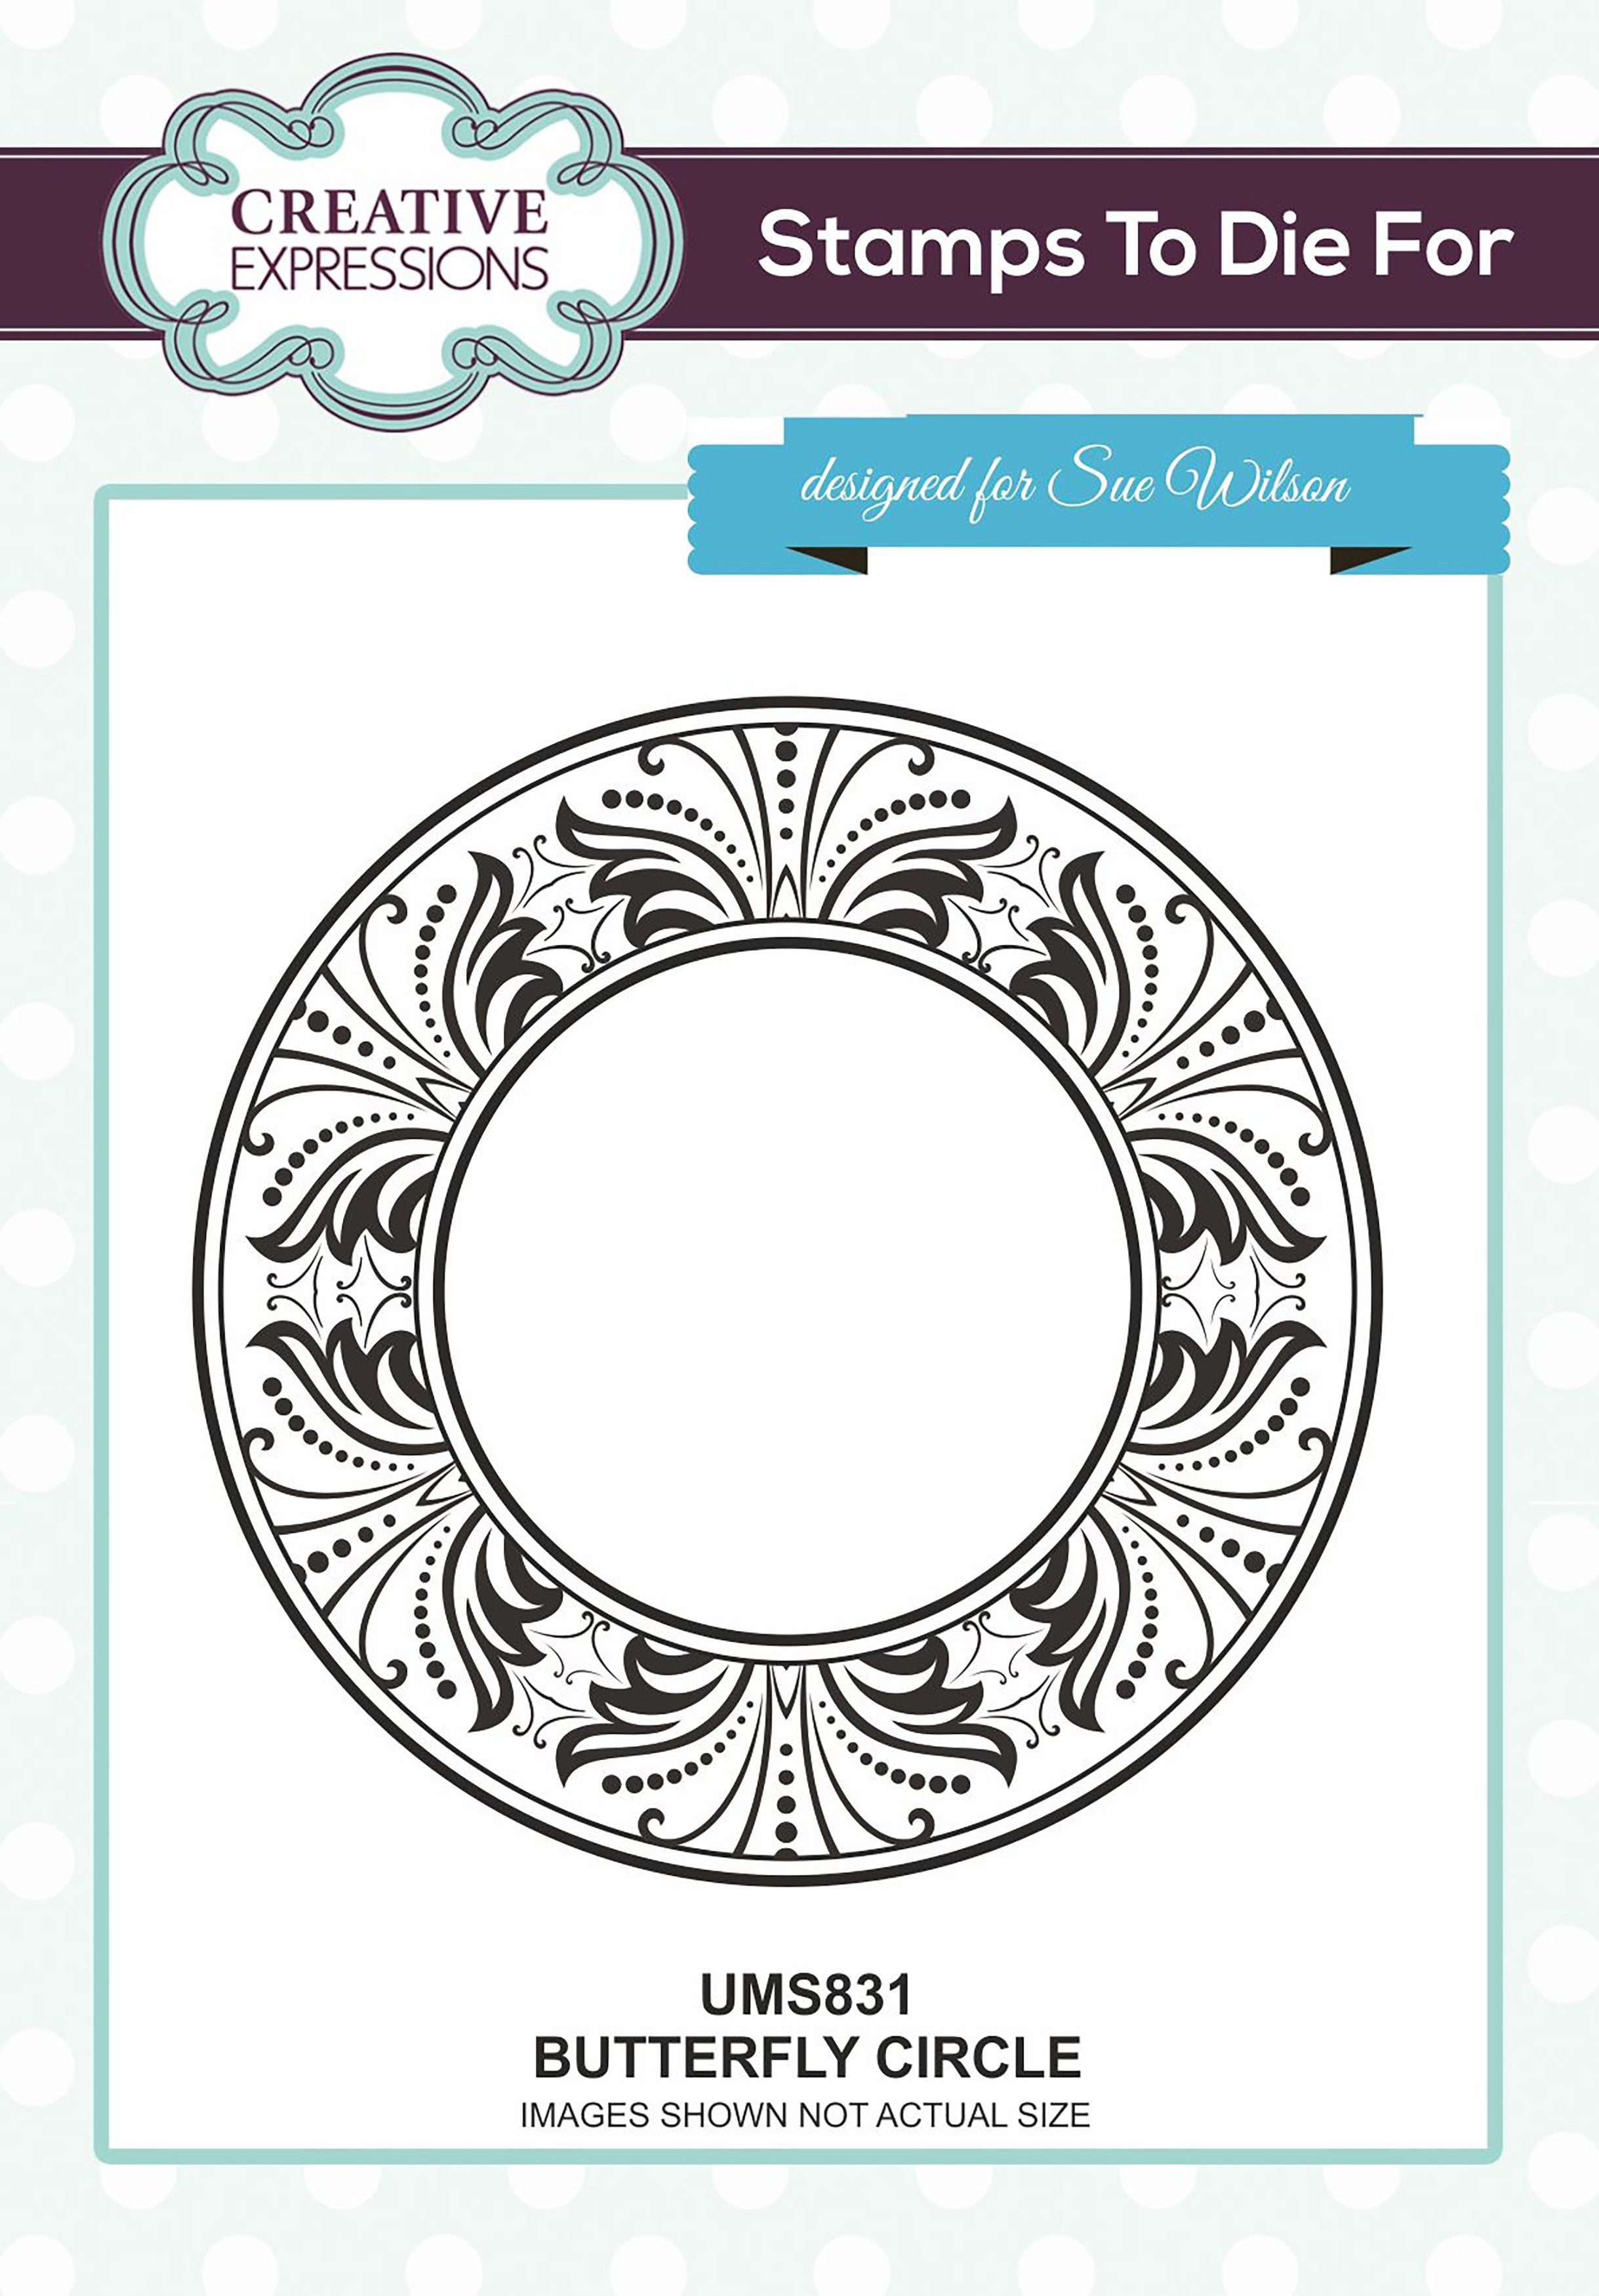 Creative Expressions Stamps To Dies For Butterfly Circle Scrapbooking Warehouse